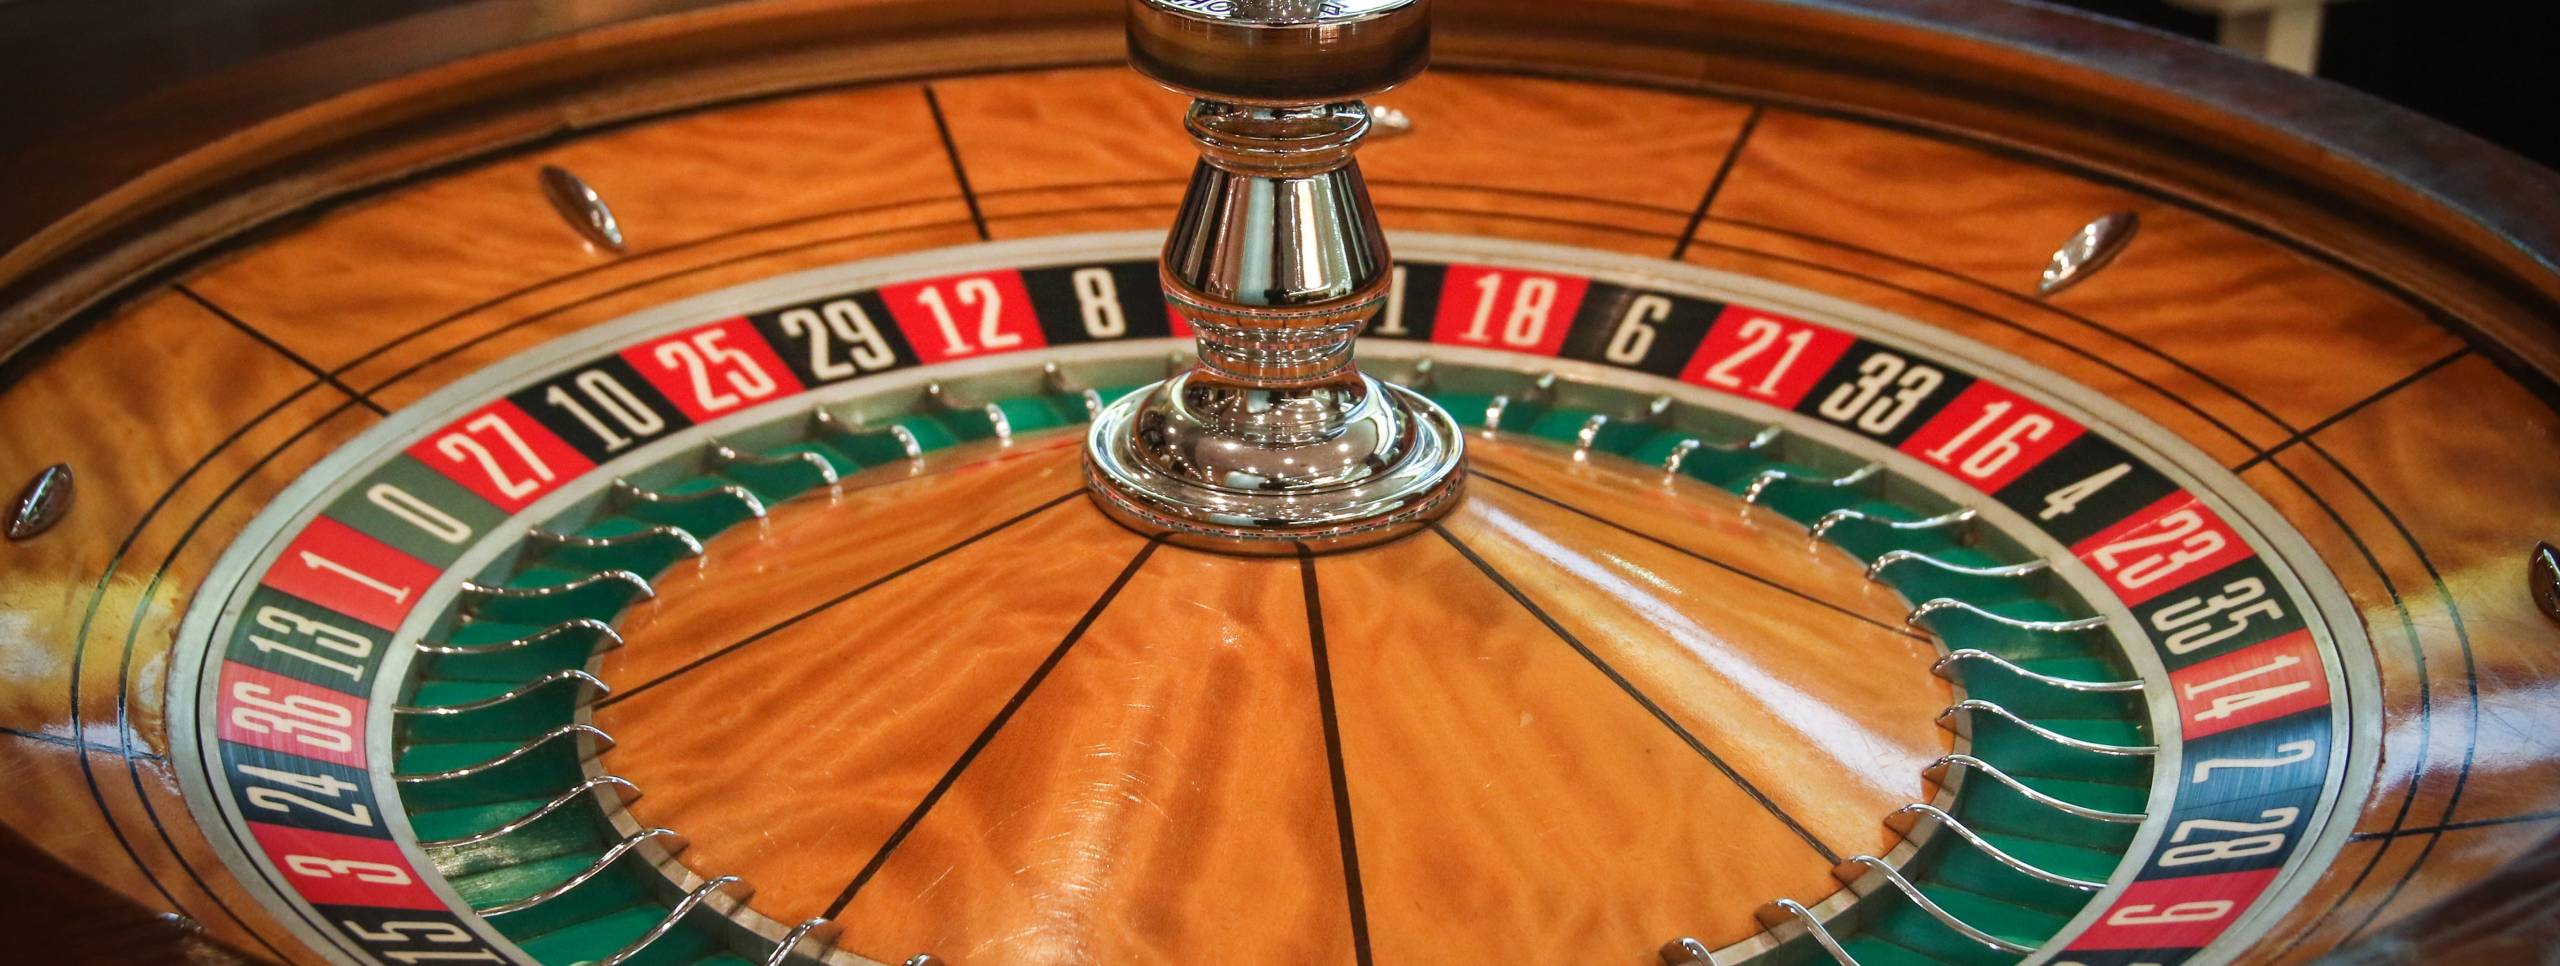 Table Games Roulette